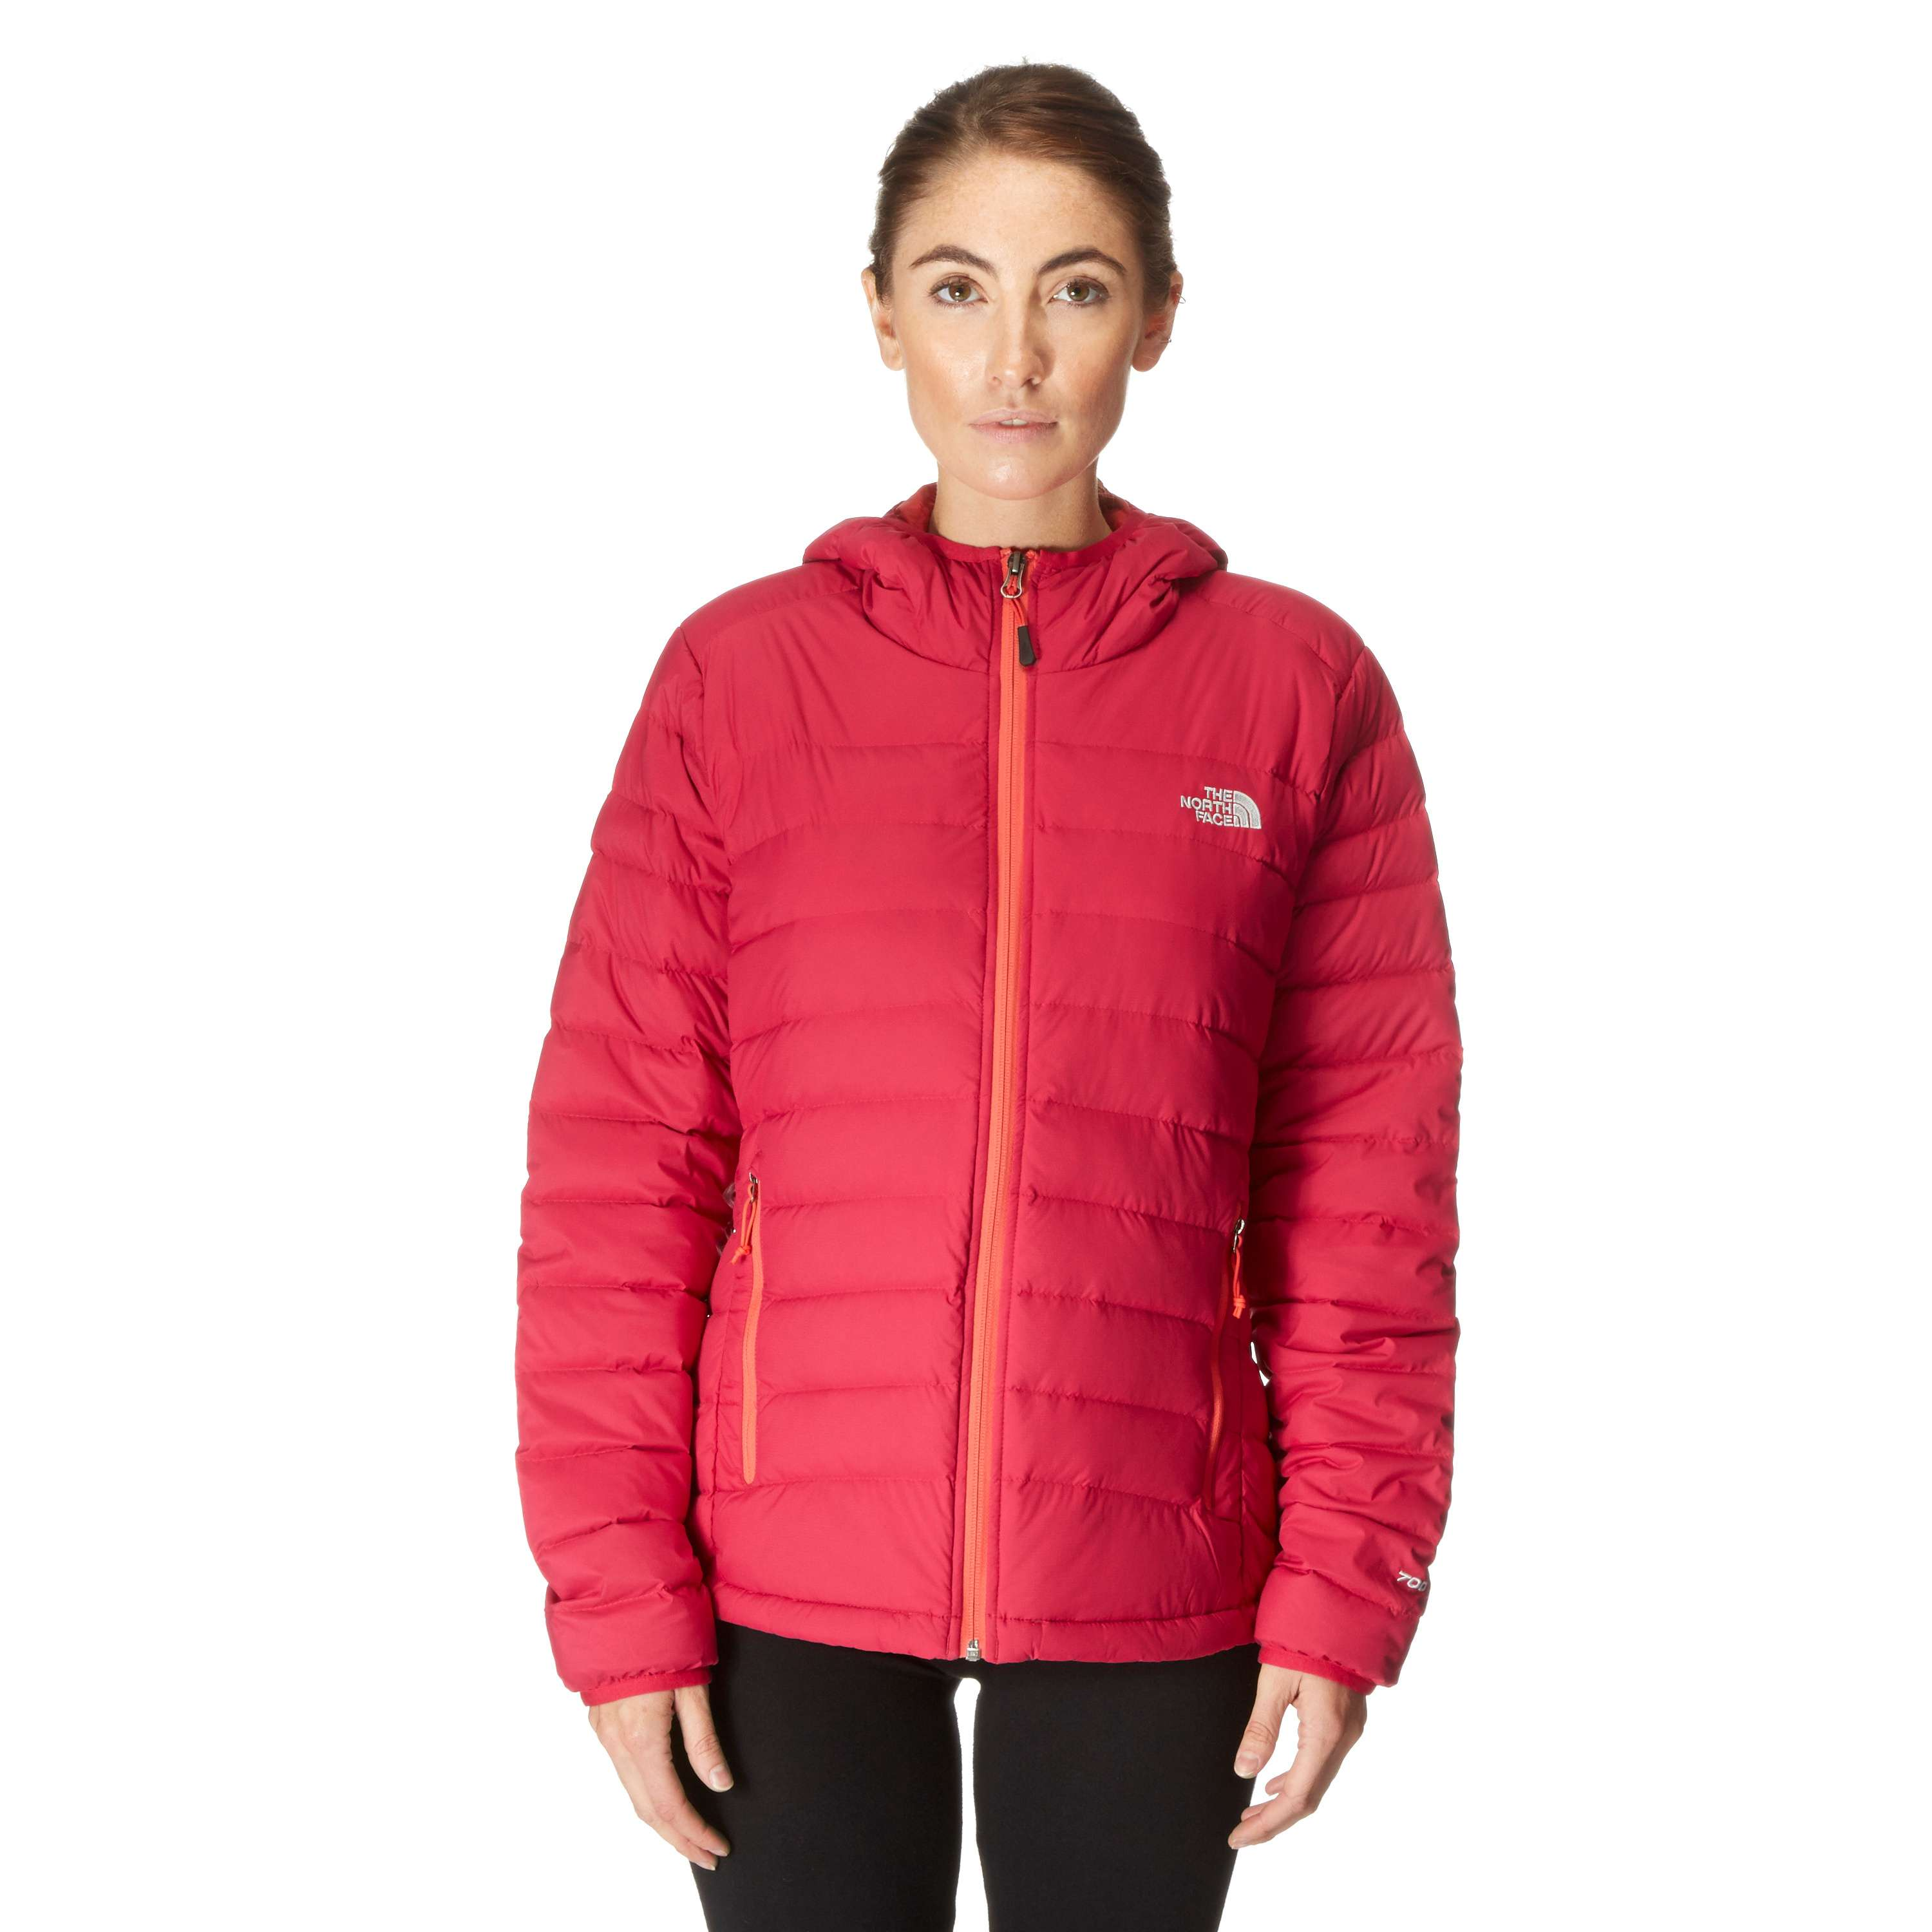 THE NORTH FACE Women's Mistassini Hooded Jacket